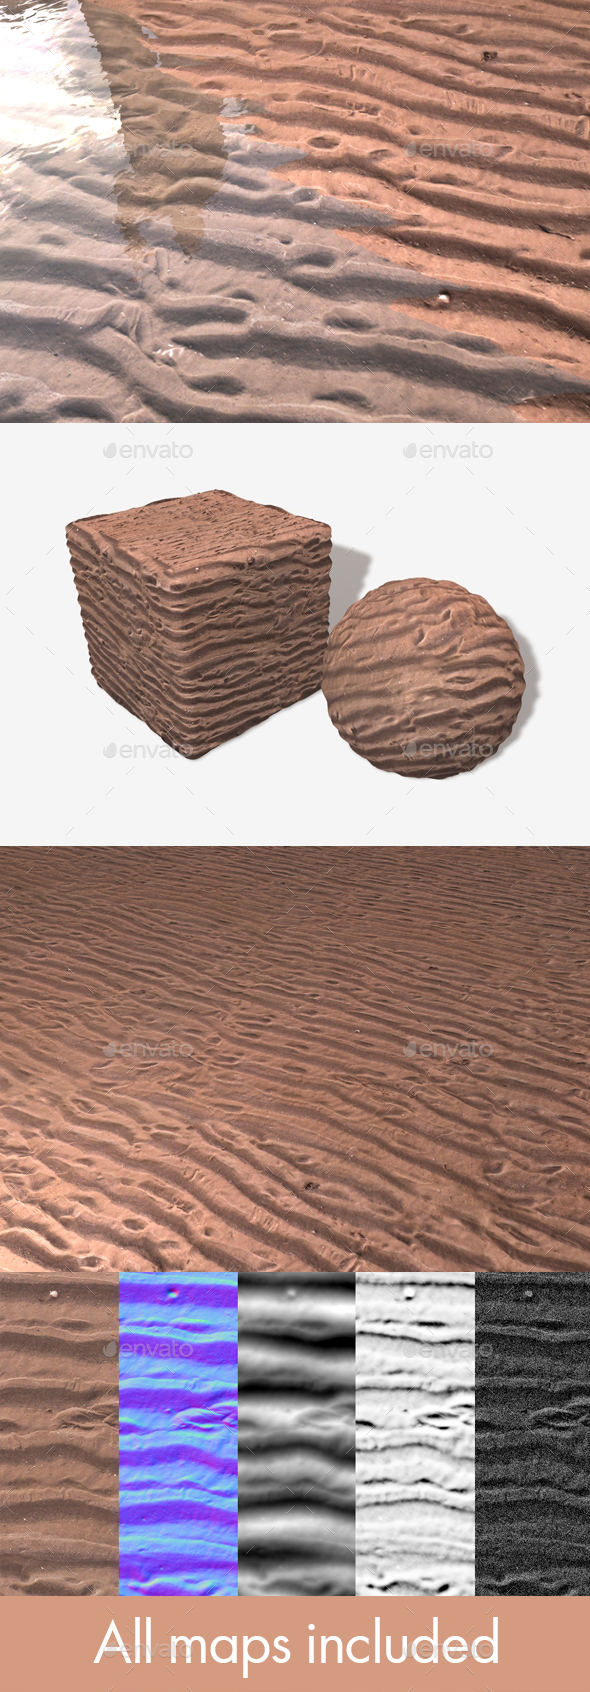 Sand Ripples Seamless Texture - 3DOcean Item for Sale